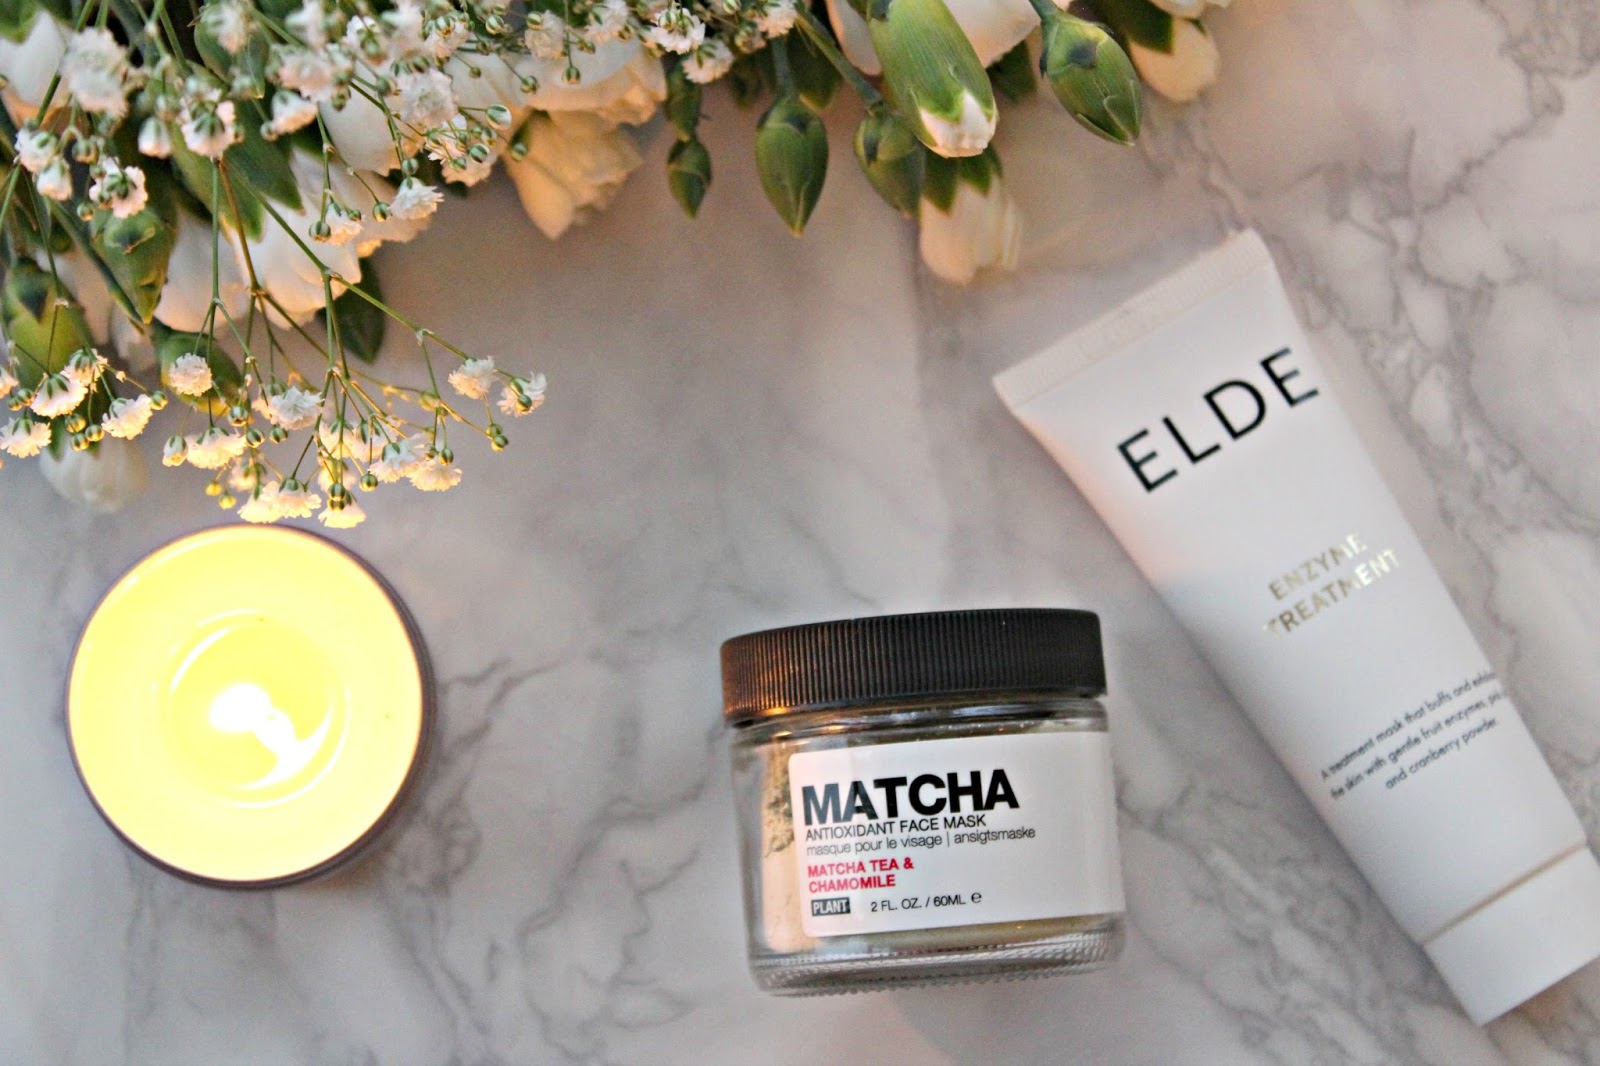 Multimasking – Featuring Plant apothecary and Elde